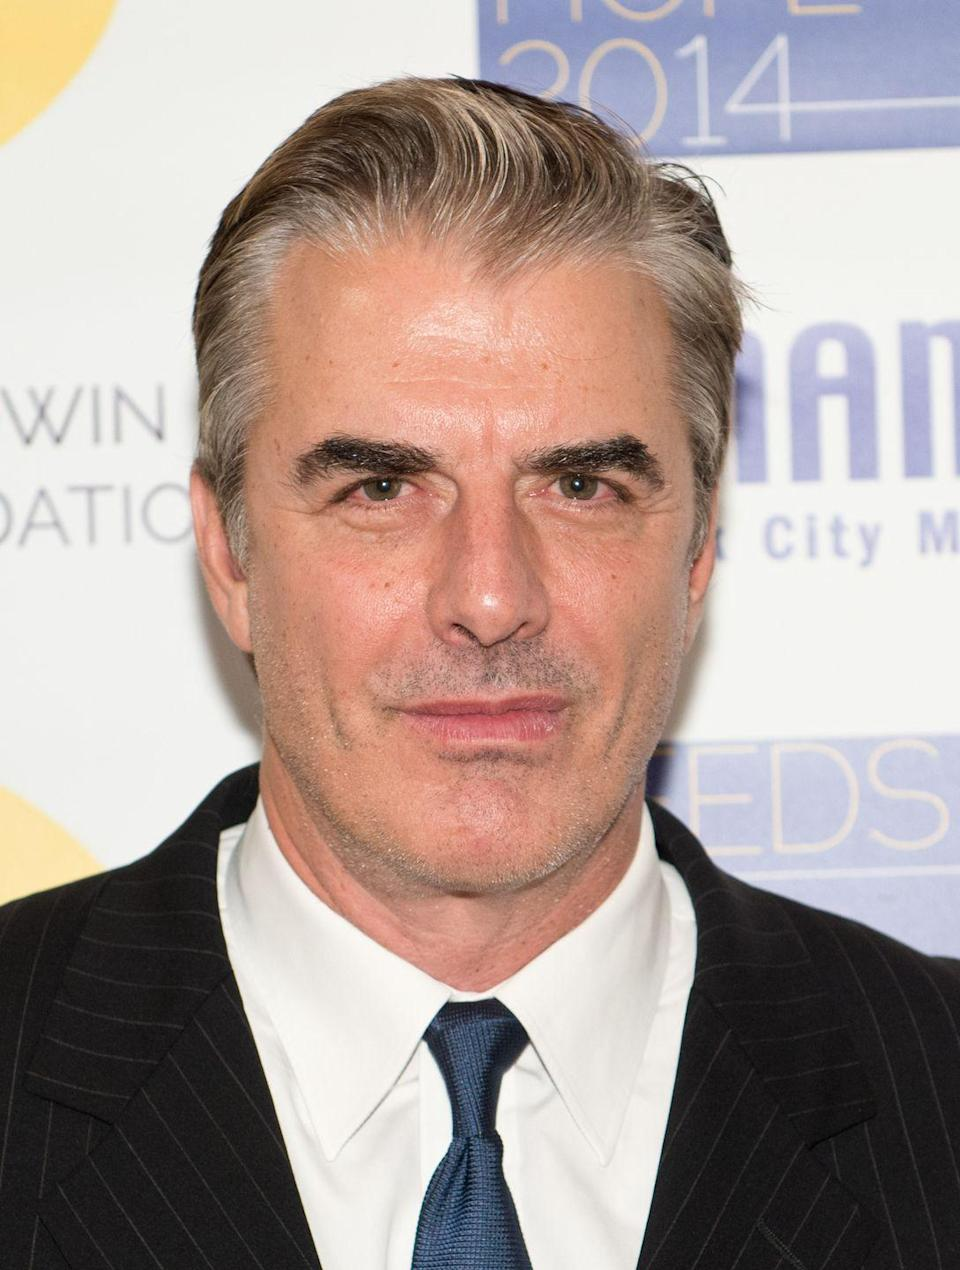 """<p>Chris Noth, who played Mr. Big on the show, was asked by TMZ how his character would respond to the current fight. In true Mr. Big-fashion, Noth <a href=""""https://twitter.com/coledelbyck/status/963481510916608001"""" rel=""""nofollow noopener"""" target=""""_blank"""" data-ylk=""""slk:simply rolled up the window"""" class=""""link rapid-noclick-resp"""">simply rolled up the window</a> of his car.</p>"""